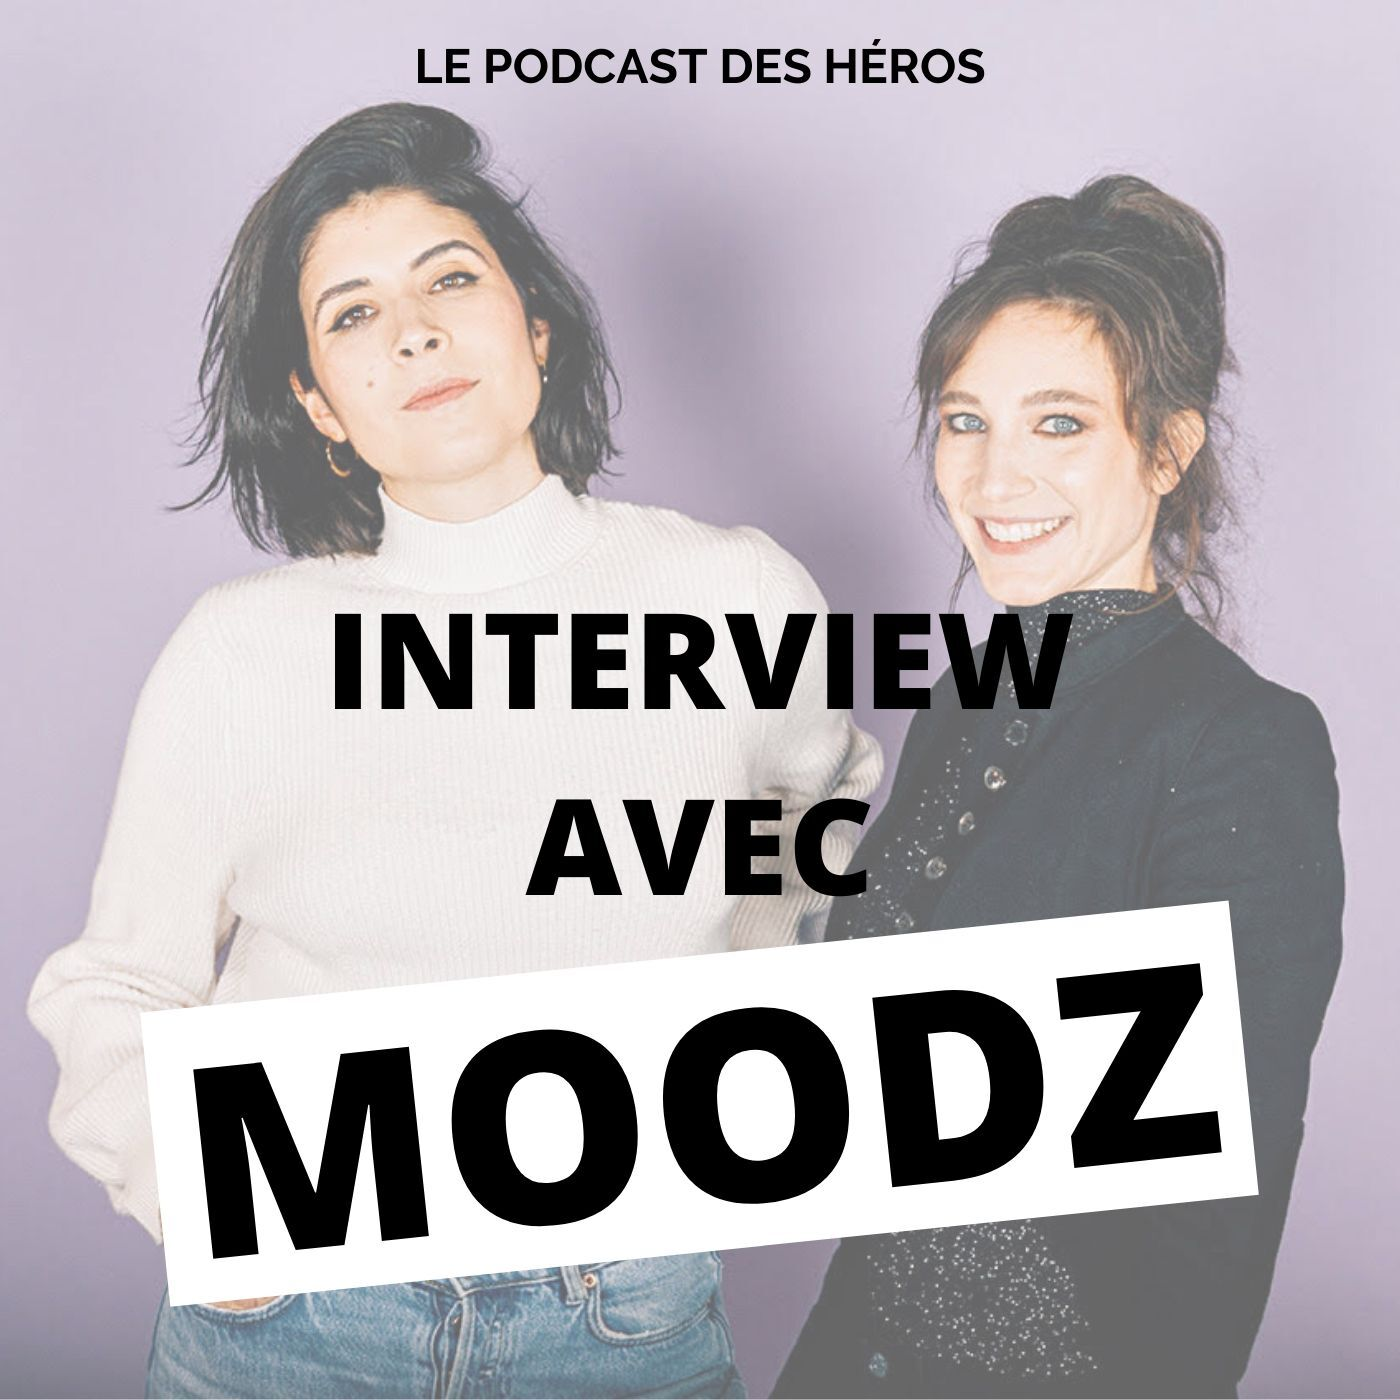 INTERVIEW AVEC CAROLINE, LA CO-FONDATRICE DE MOODZ